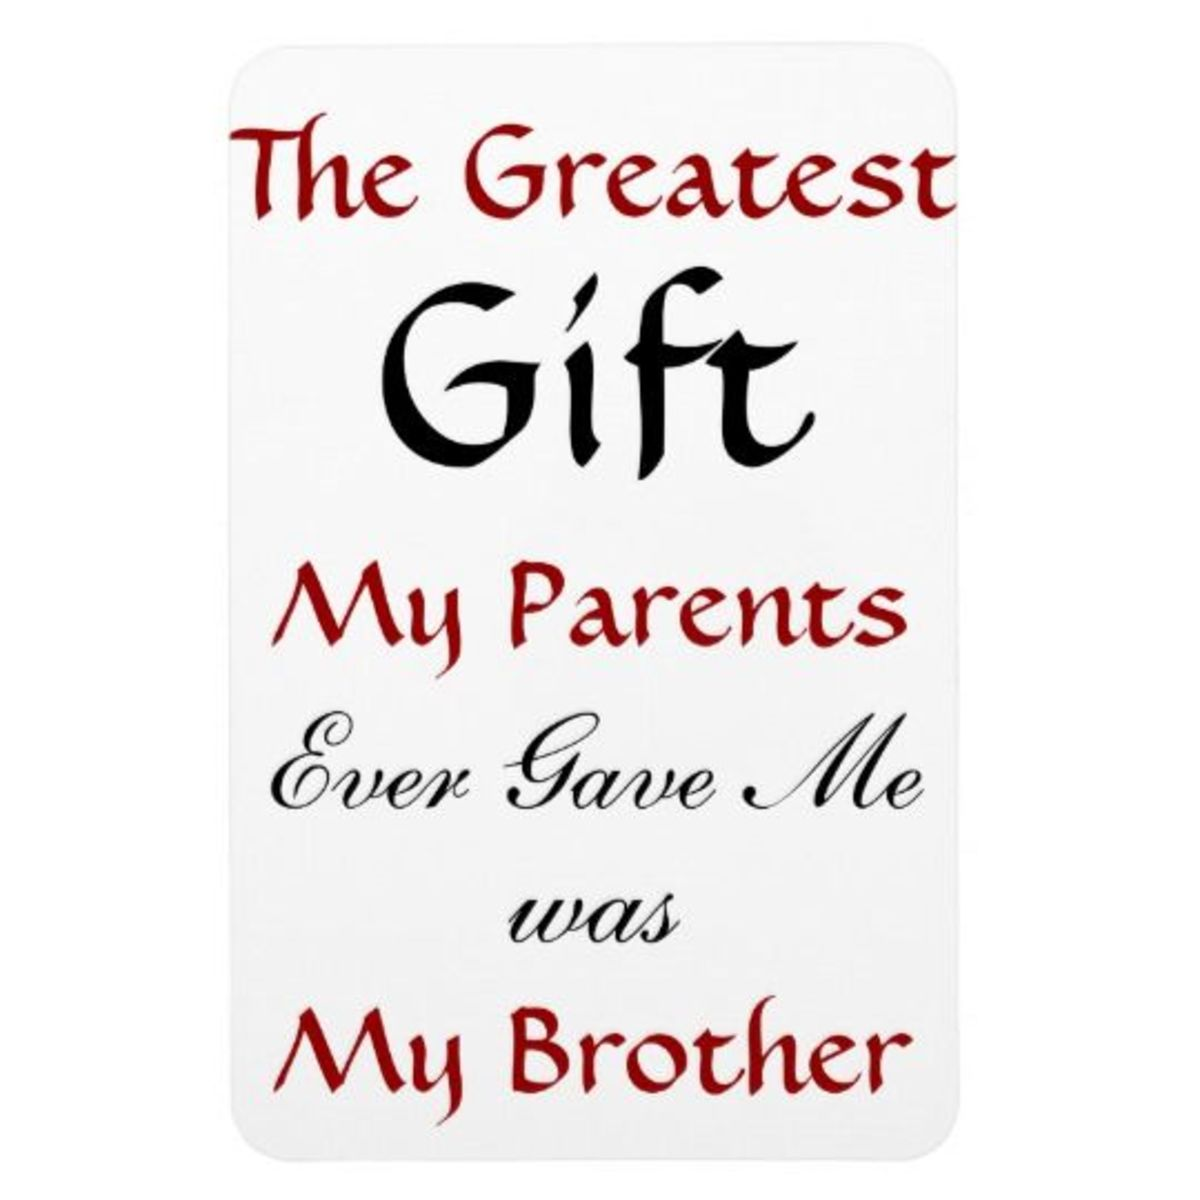 The Greatest Gift My Parents Ever Gave Me was My Brother - Fridge Magnet